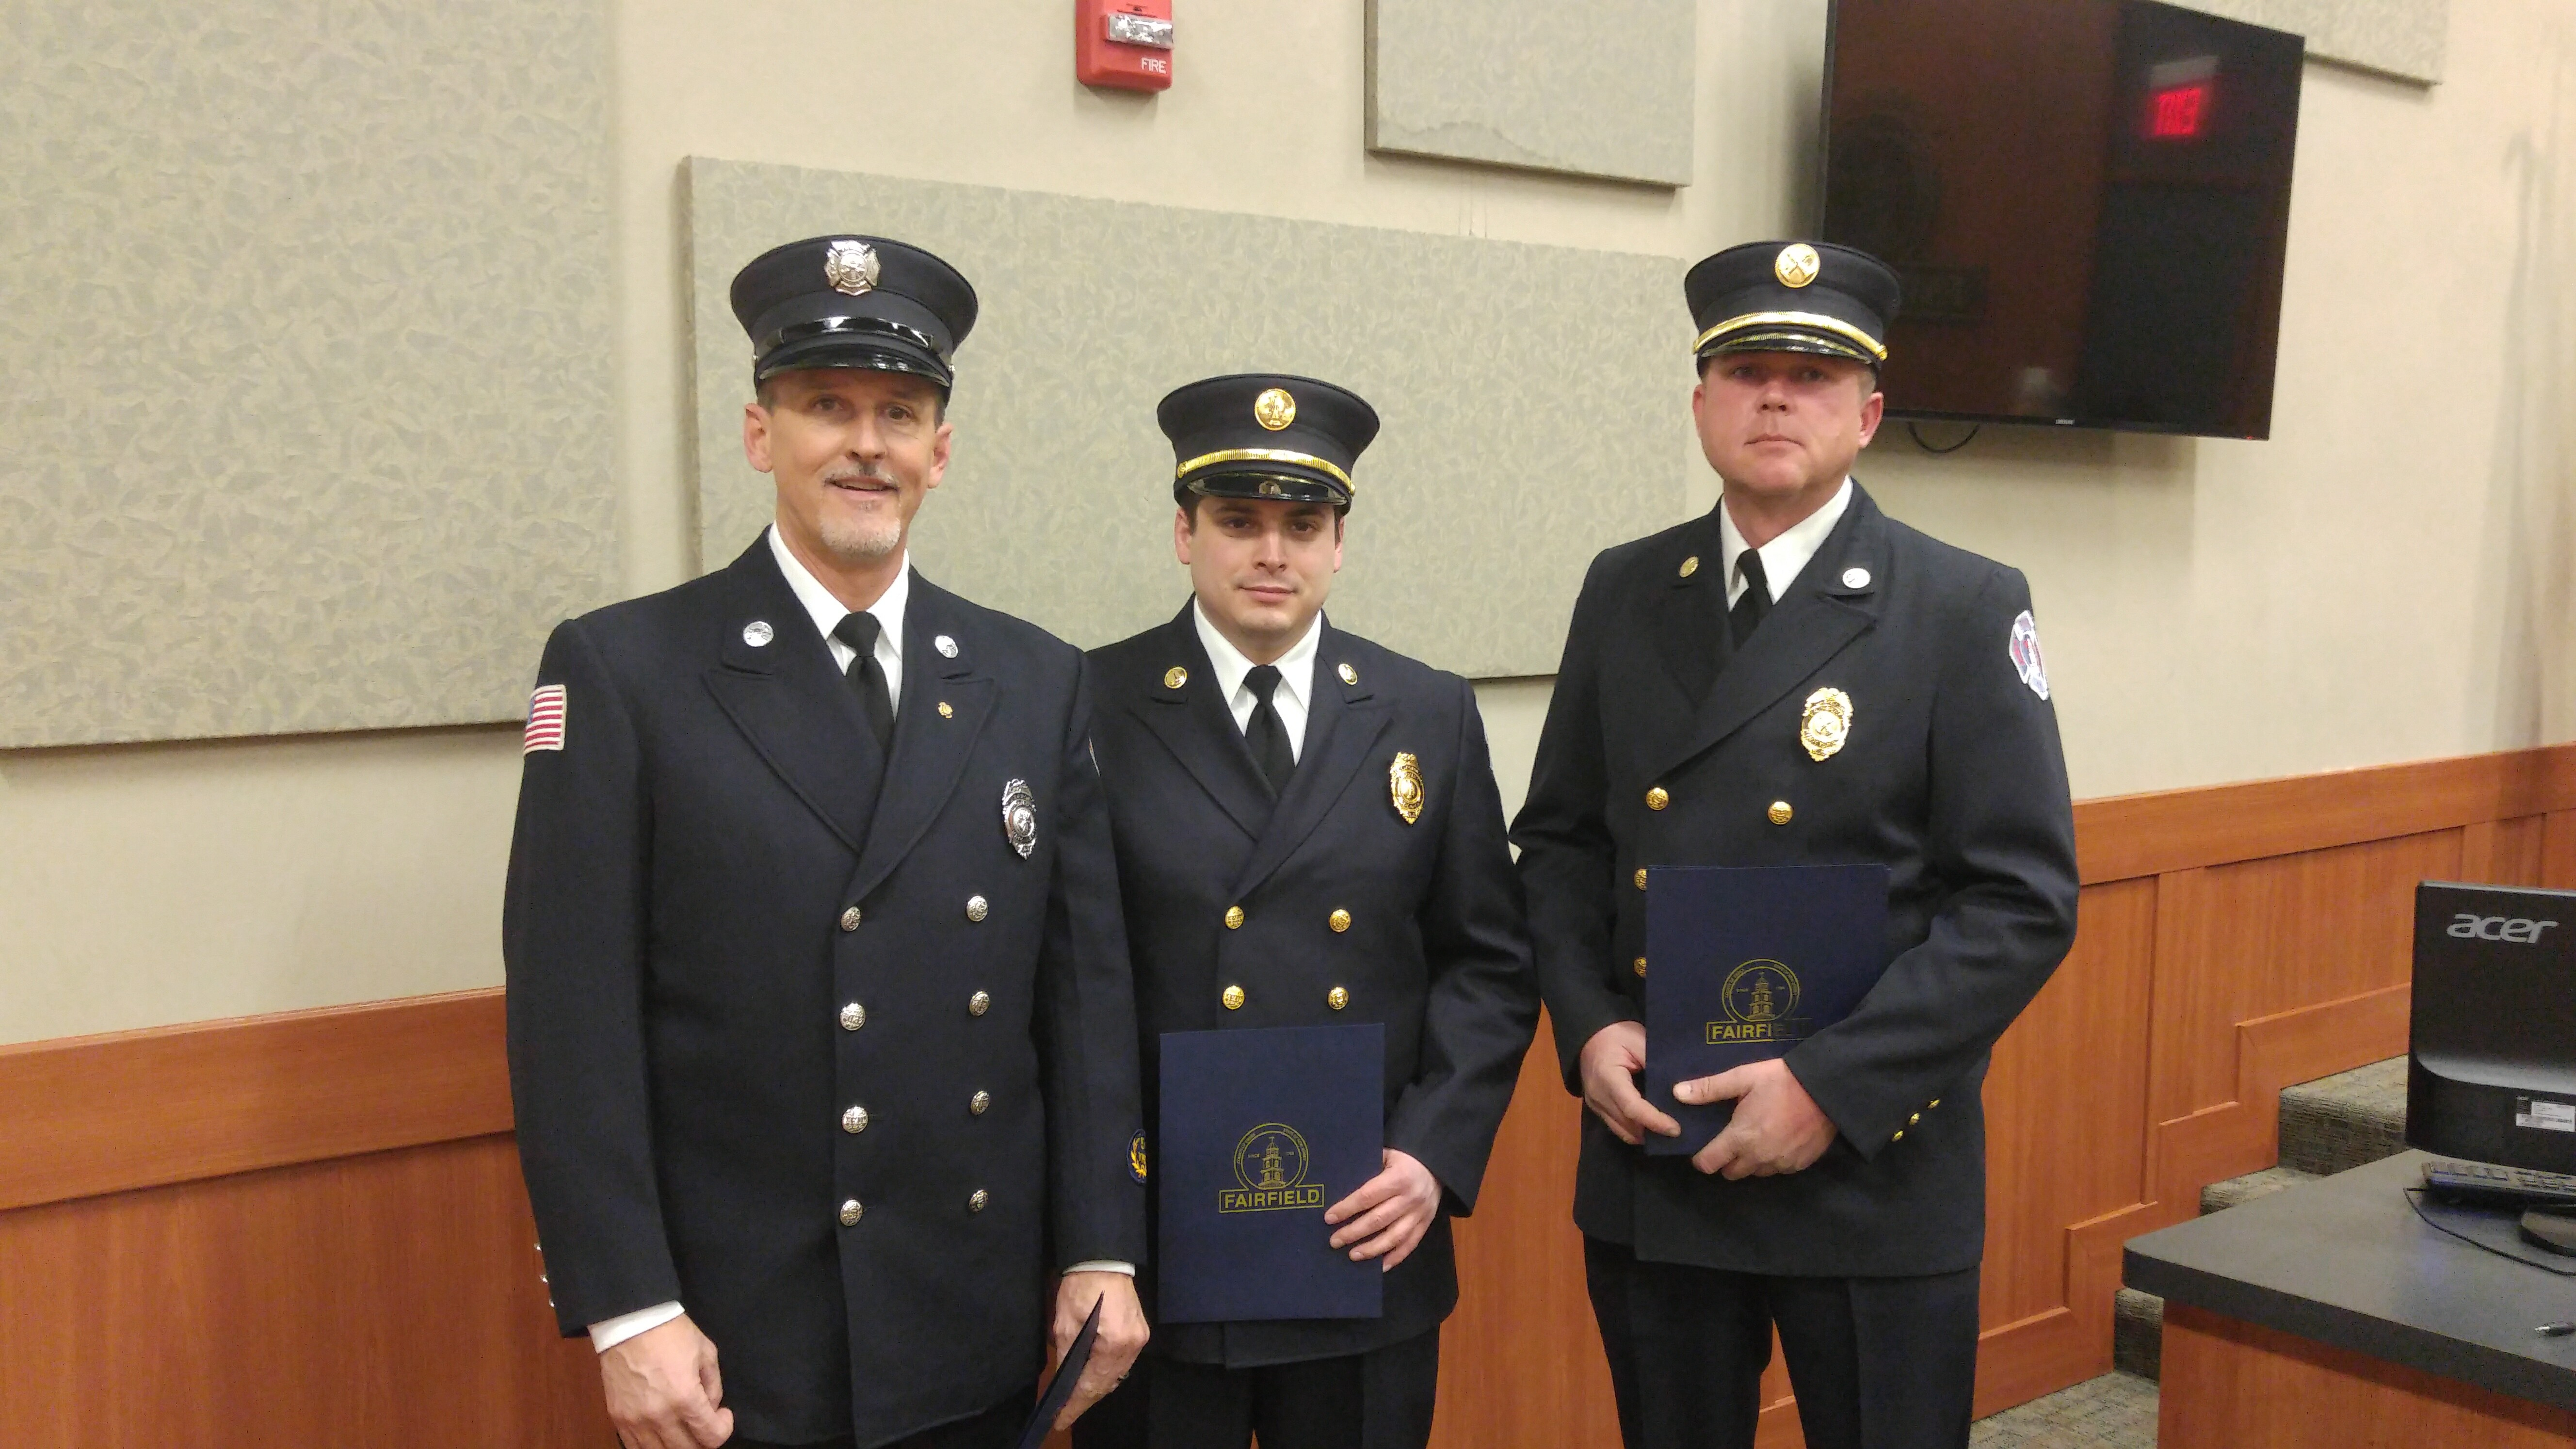 3f78714d2983c127c3ee_1._Firefighters_Pose_with_Awards.jpg